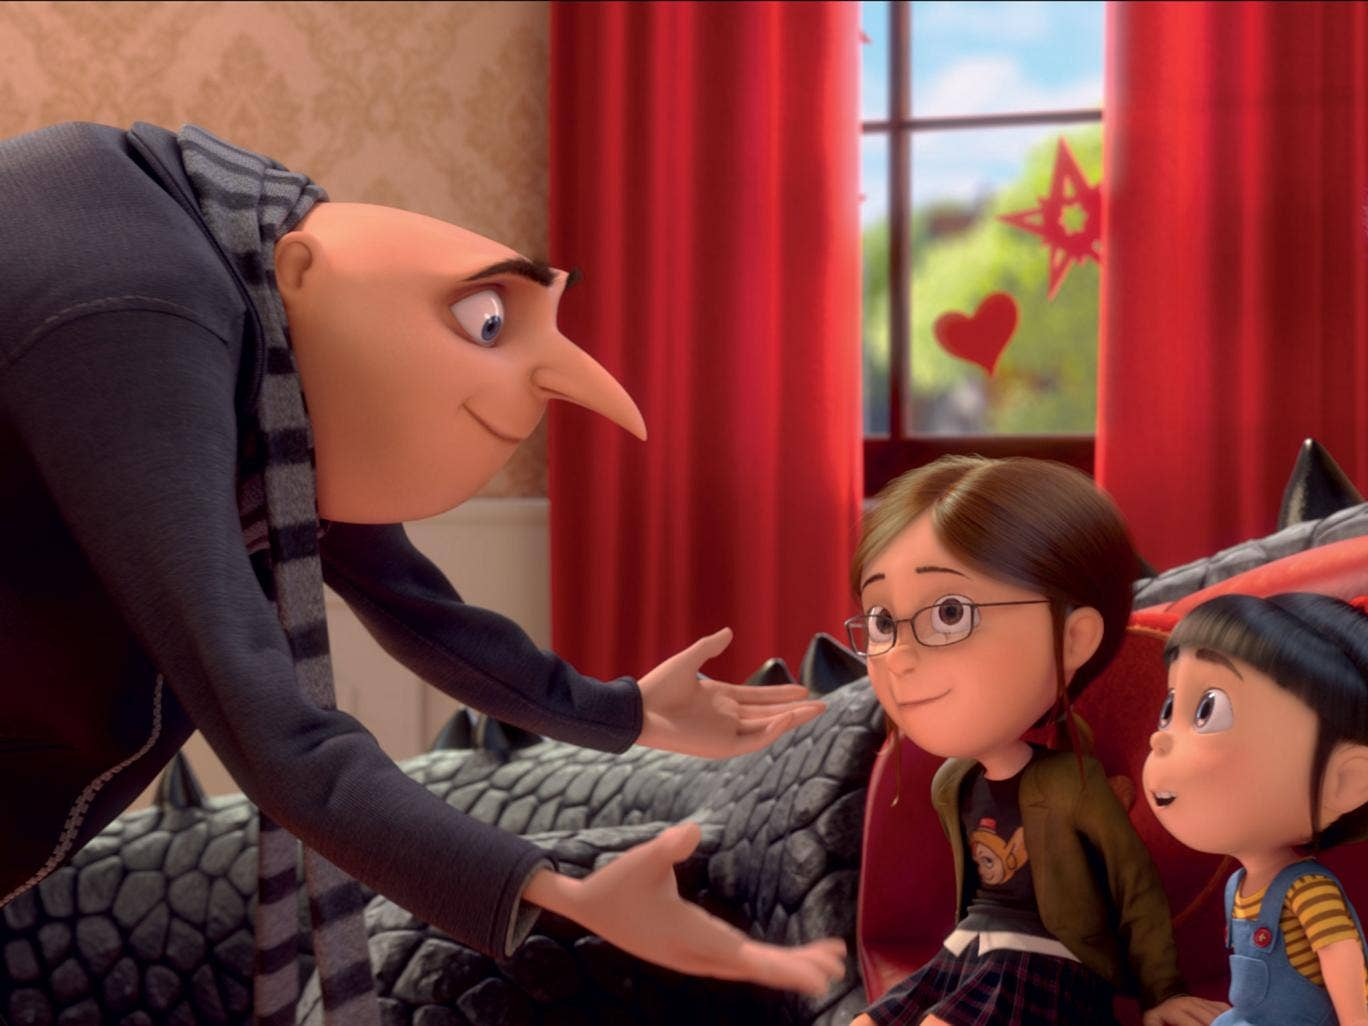 Palmed off on kids: Steve Carell voices Gru in 'Despicable Me 2', a sequel with nothing for adults